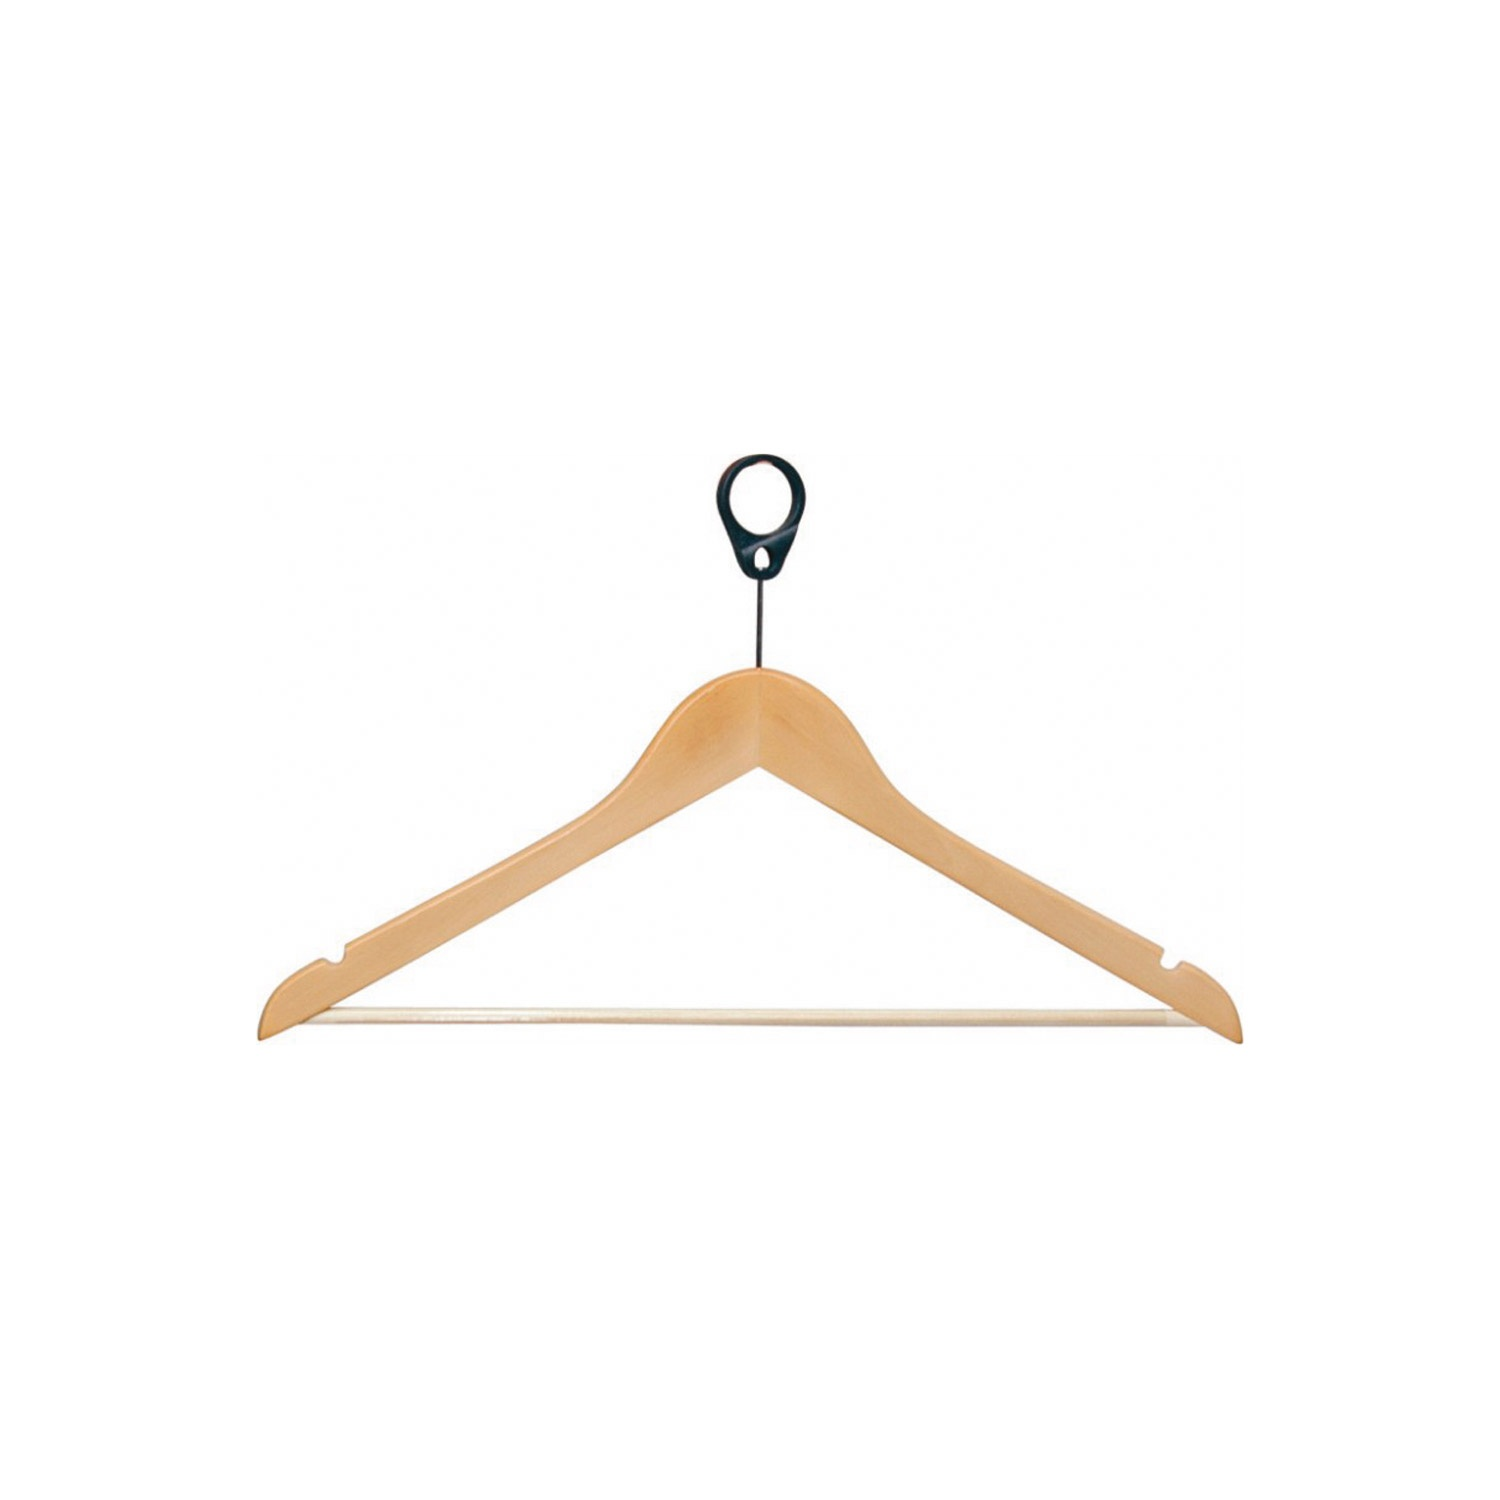 PL Printed Wooden Clothes Hanger